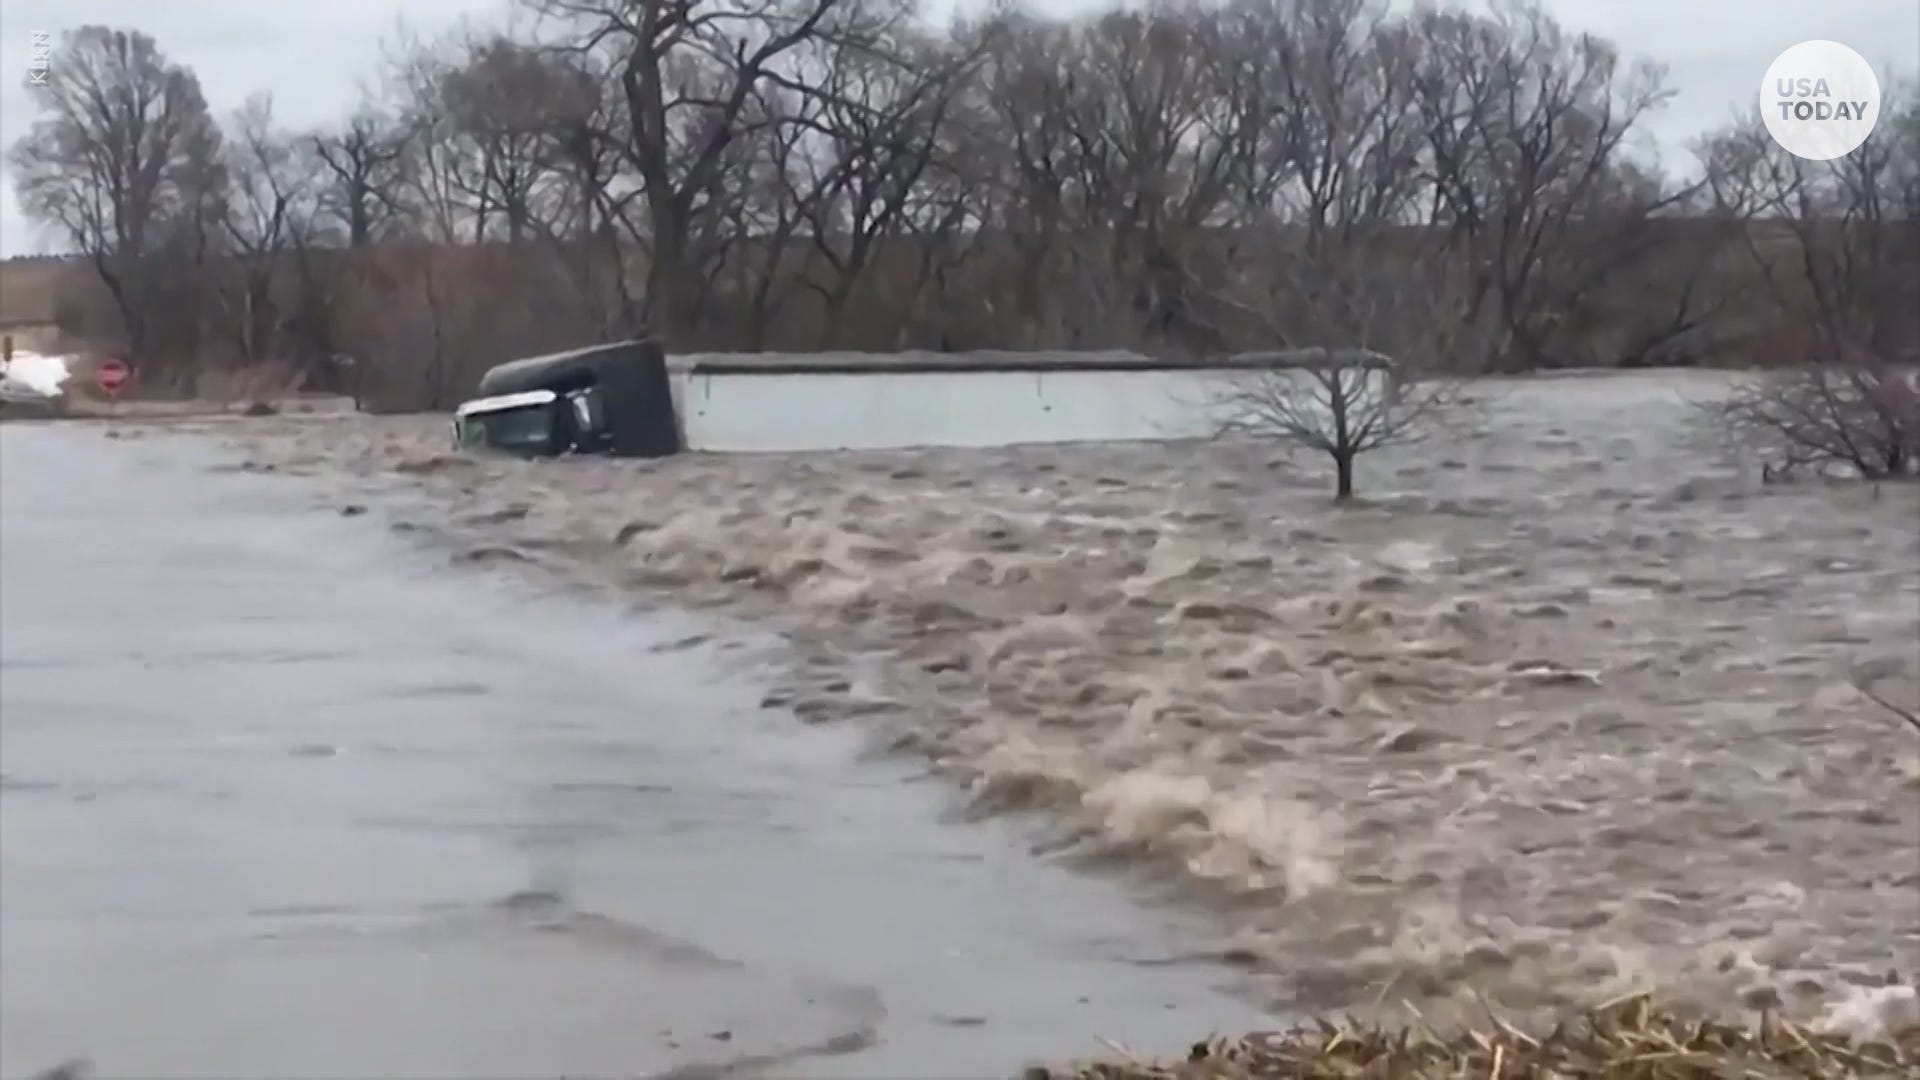 Thousands flee, few dead after historic midwest flooding